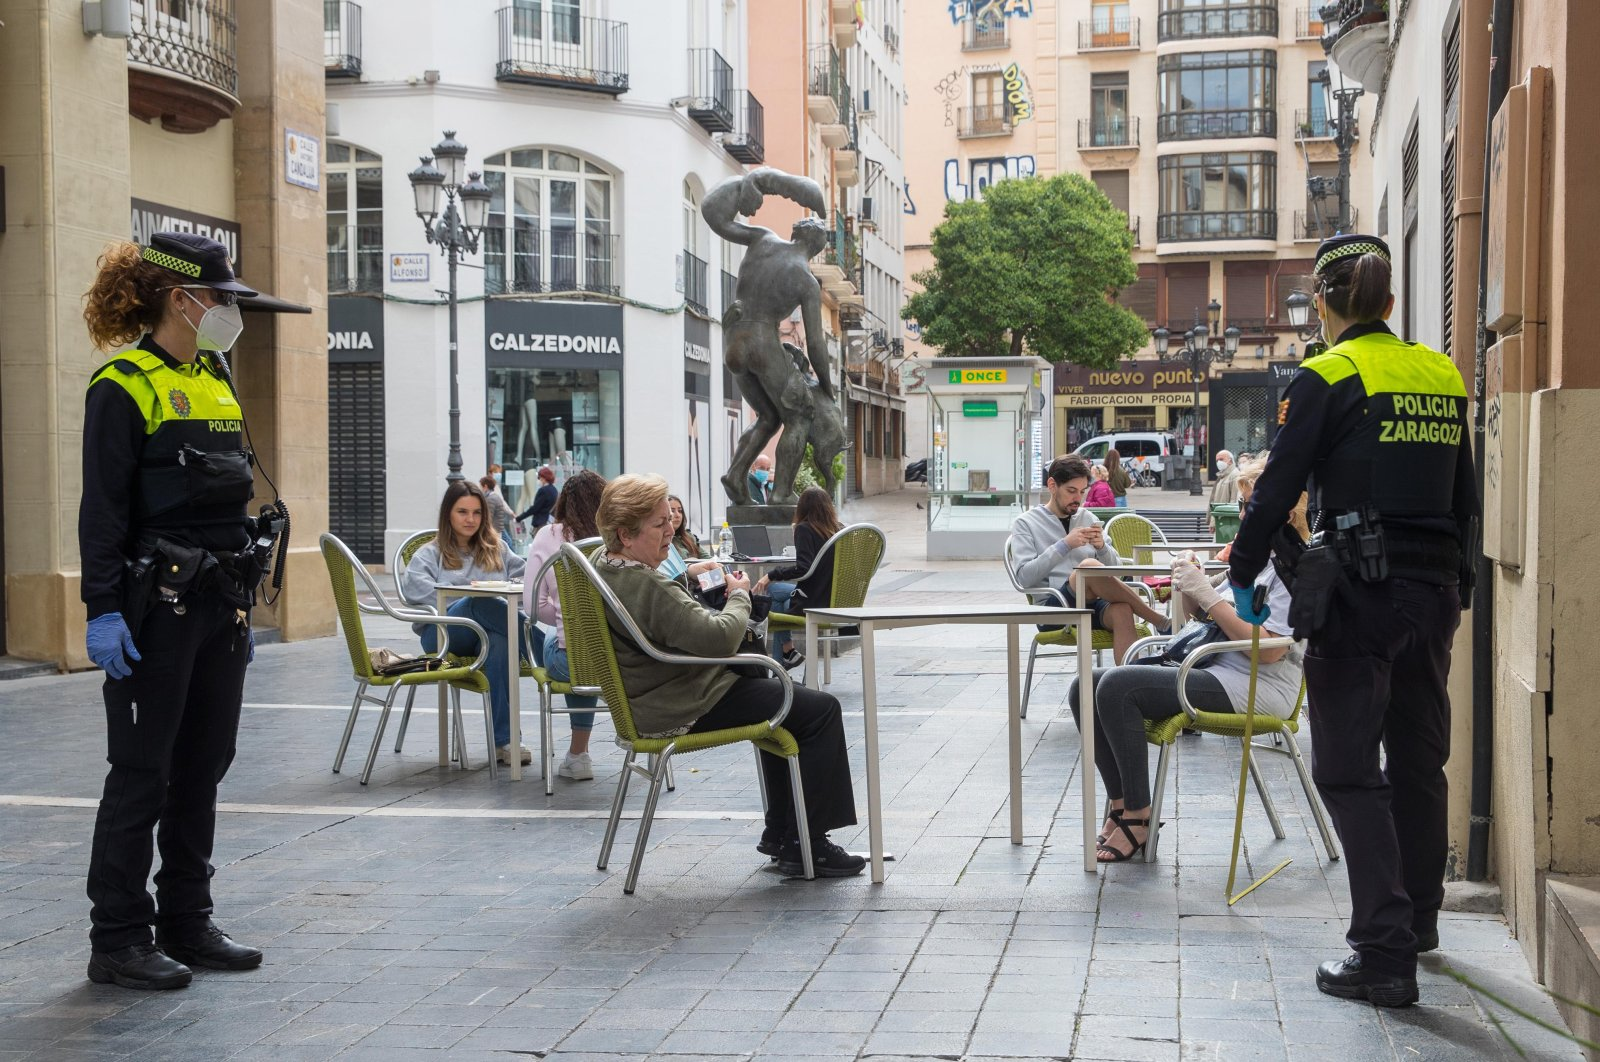 Police measure distance between tables at a bar terrace in downtown in Zaragoza, May 11, 2020. (EPA Photo)